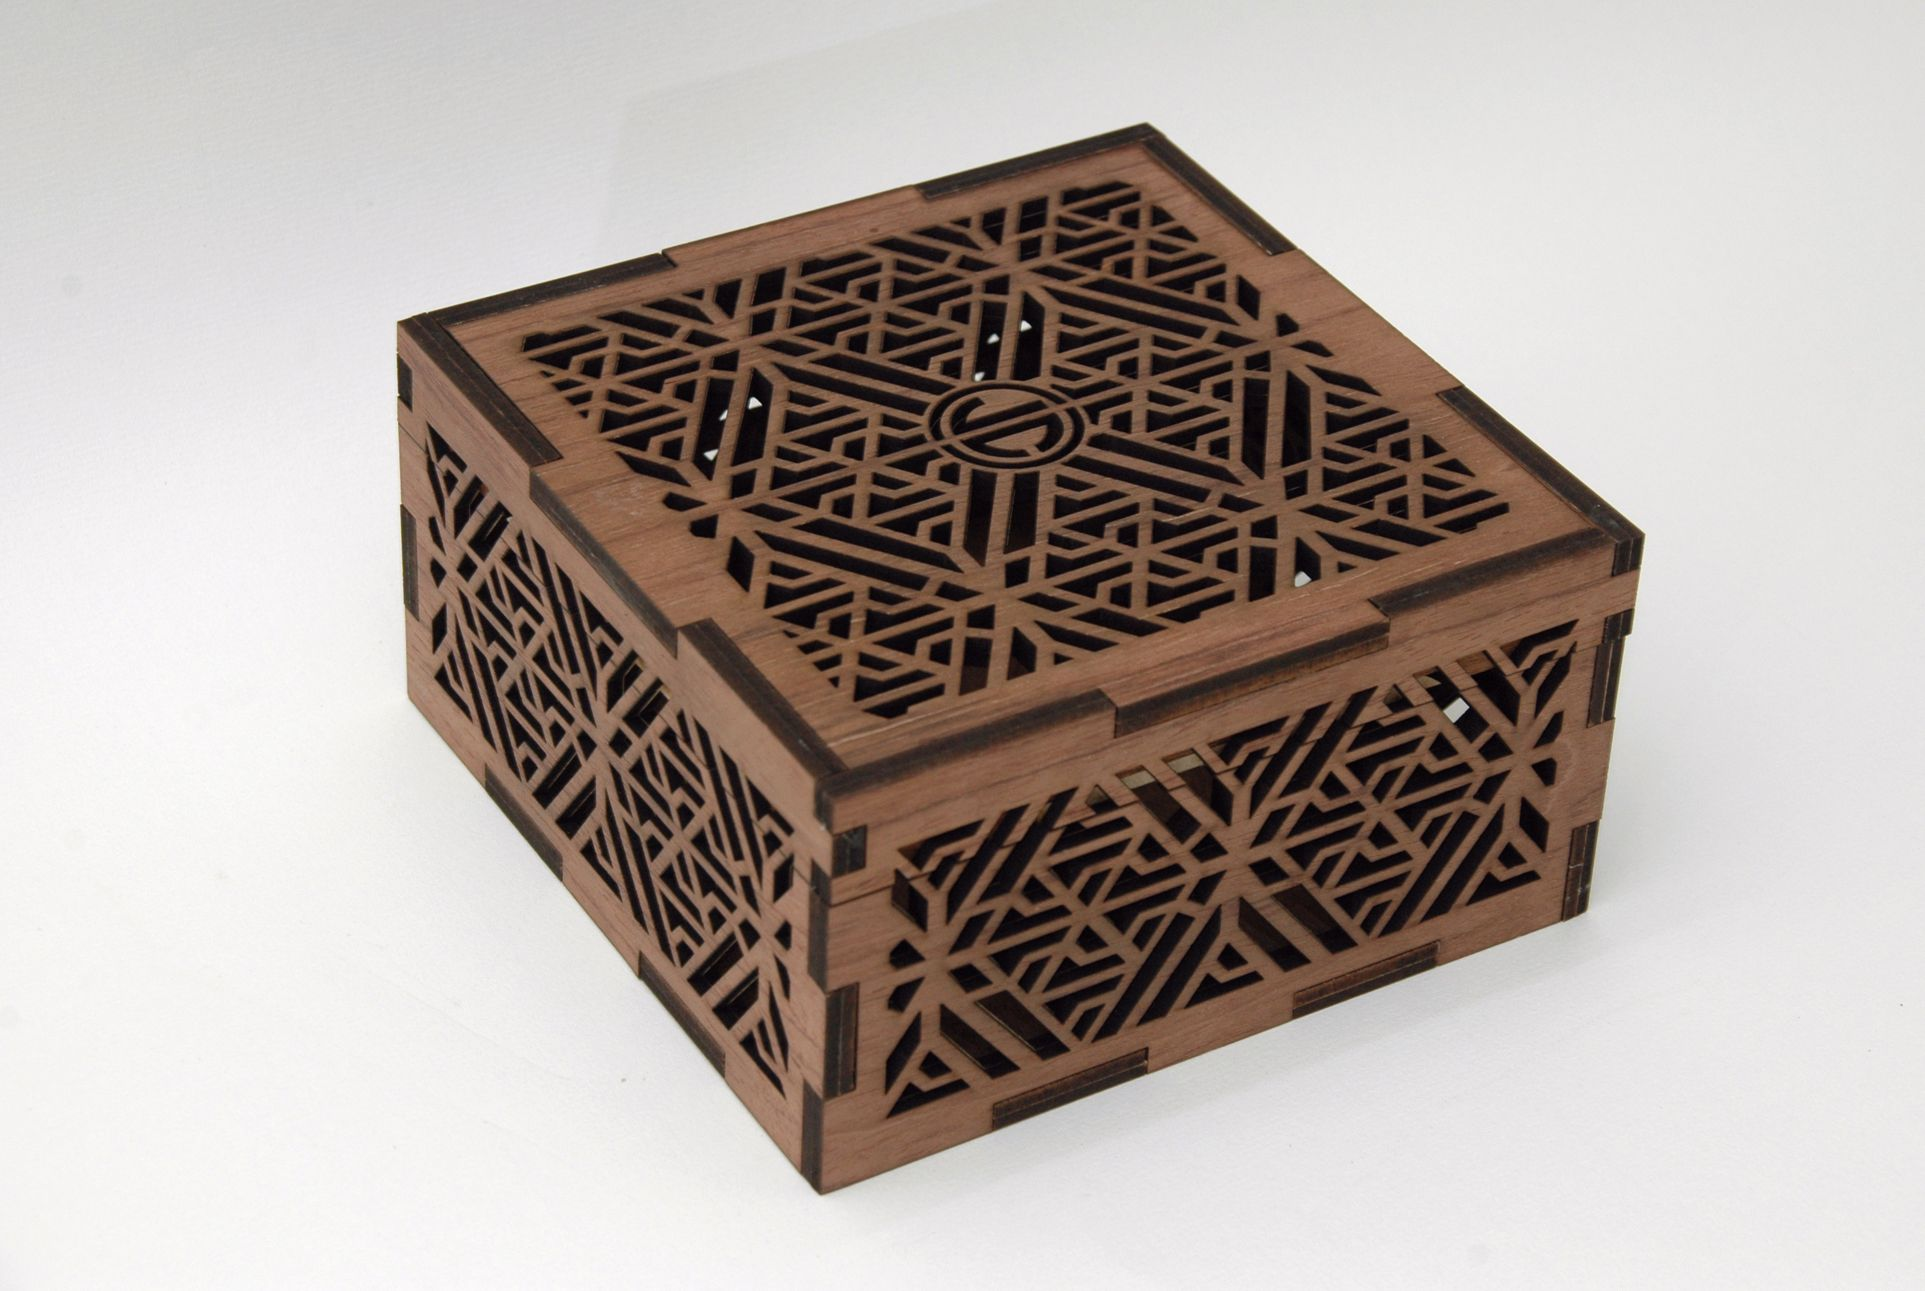 laser cutting box - Google Search | Laser cutting inspiration ... for laser cut box plans  110yll